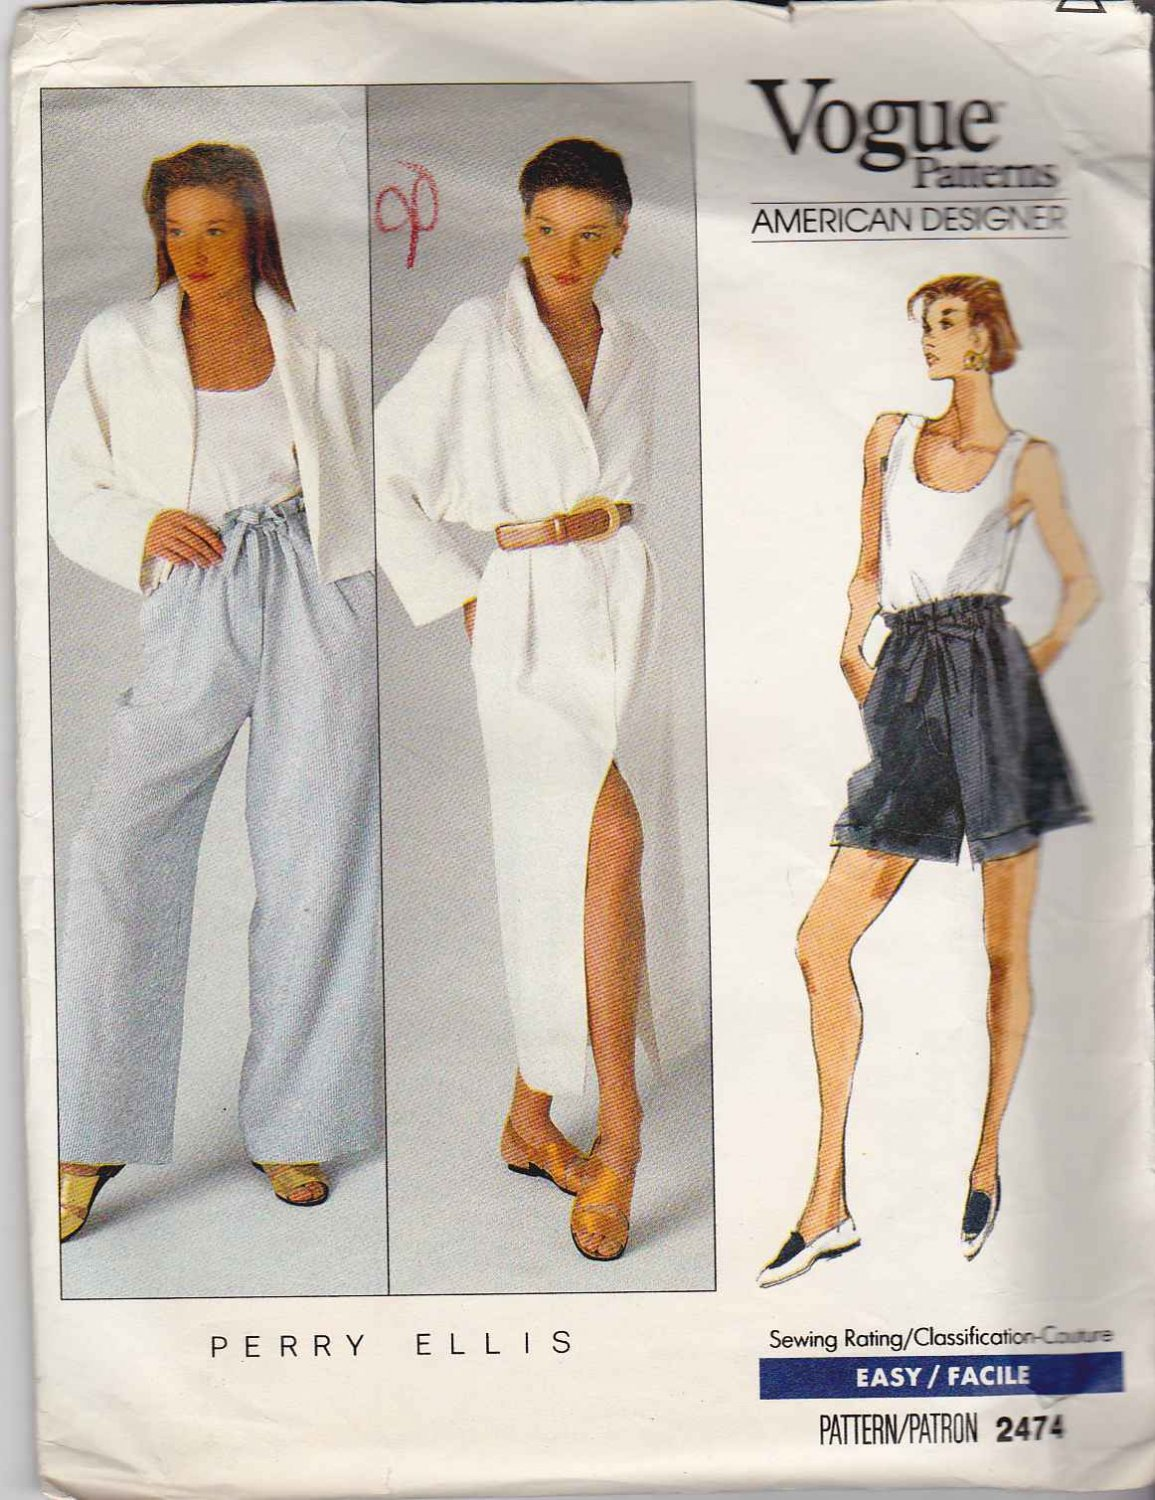 Vogue Sewing Pattern 2474 Misses Size 6-10 Easy Perry Ellis Jacket Button Front Dress Shorts Pants